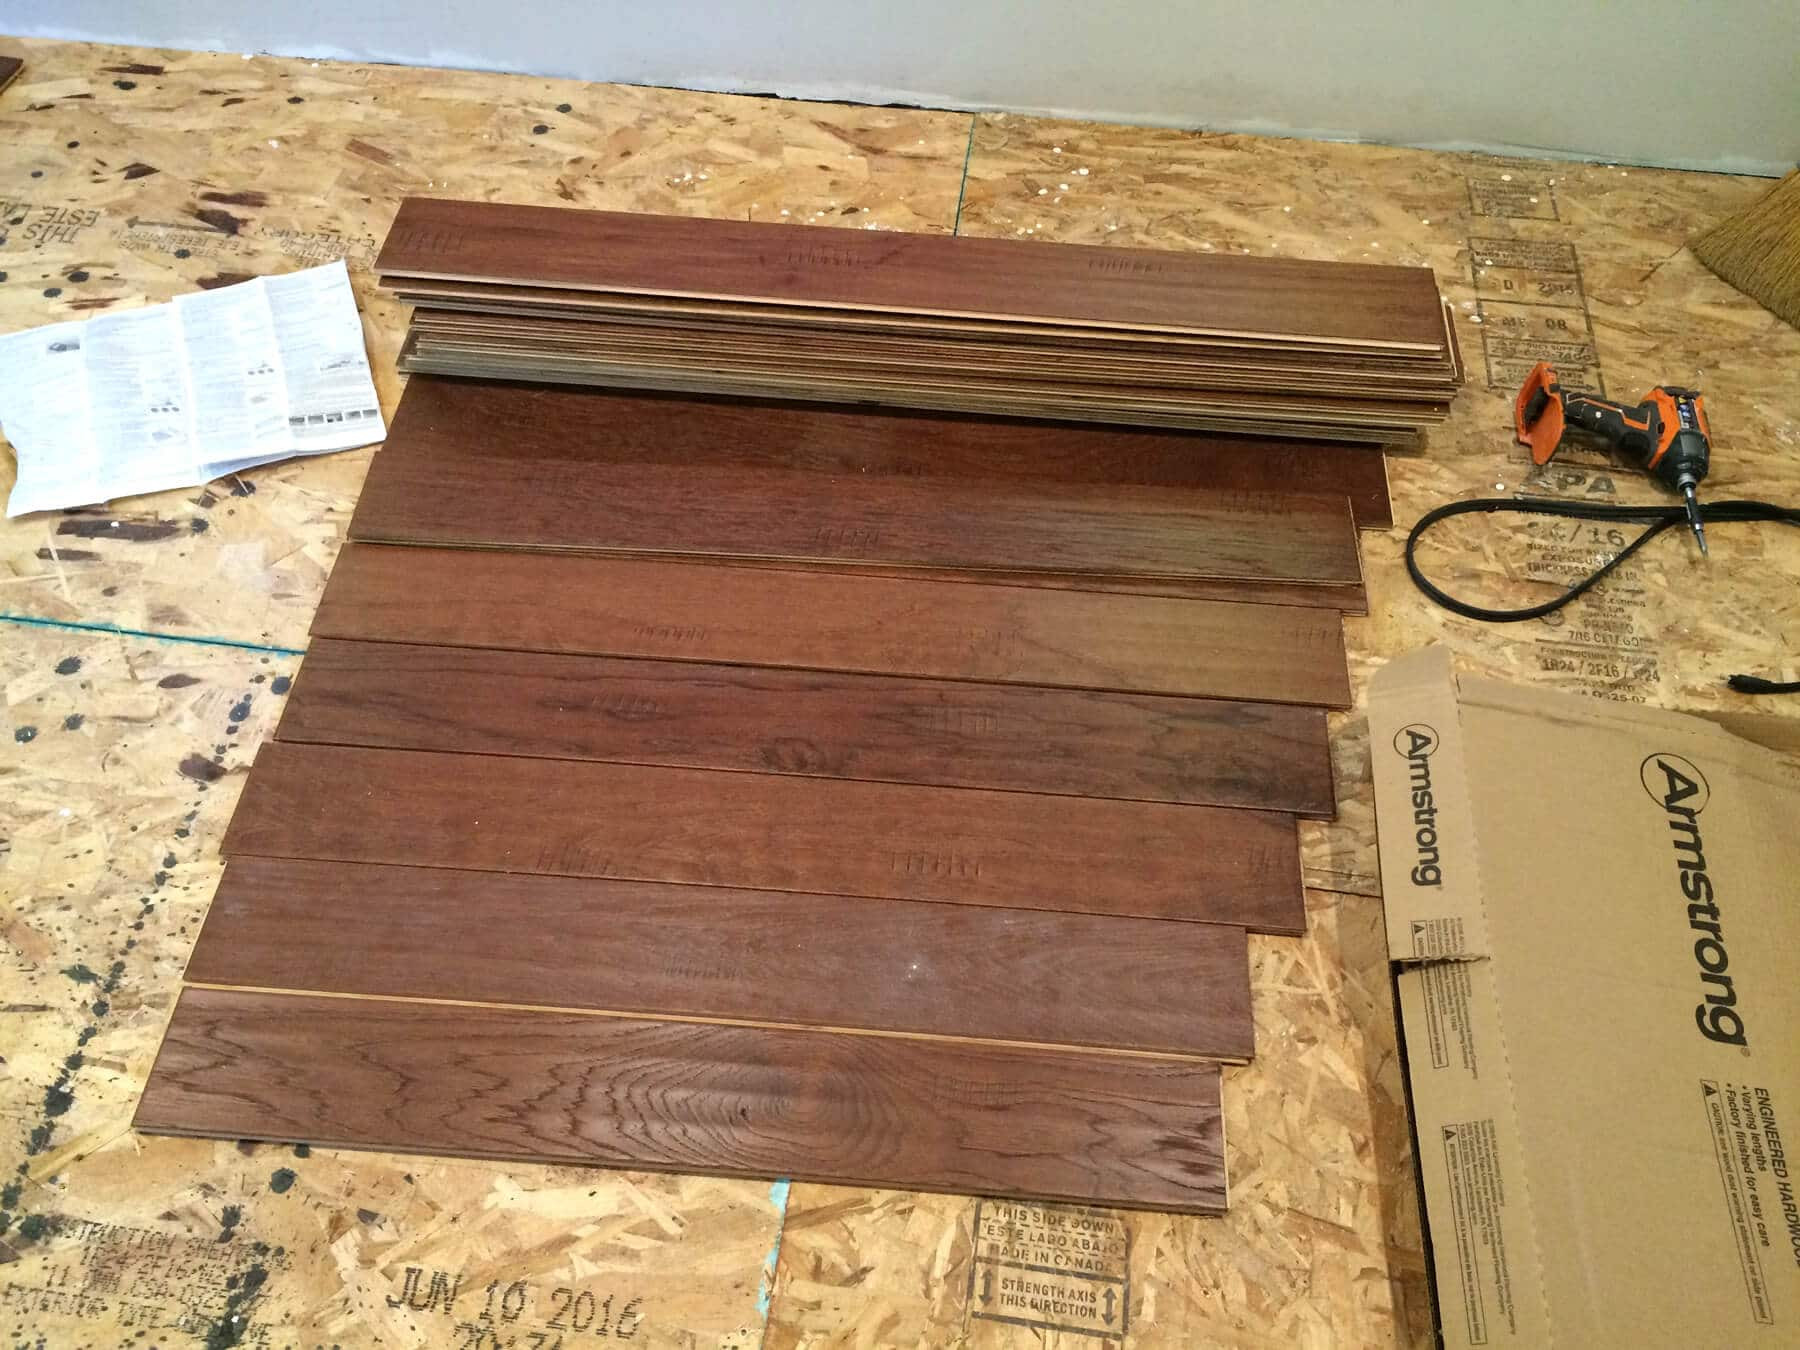 engineered hardwood flooring definition of the micro dwelling project part 5 flooring the daring gourmet within laying down the sub flooring was fine but honestly the thought of installing hardwood floors seemed extremely intimidating we were pretty nervous going in